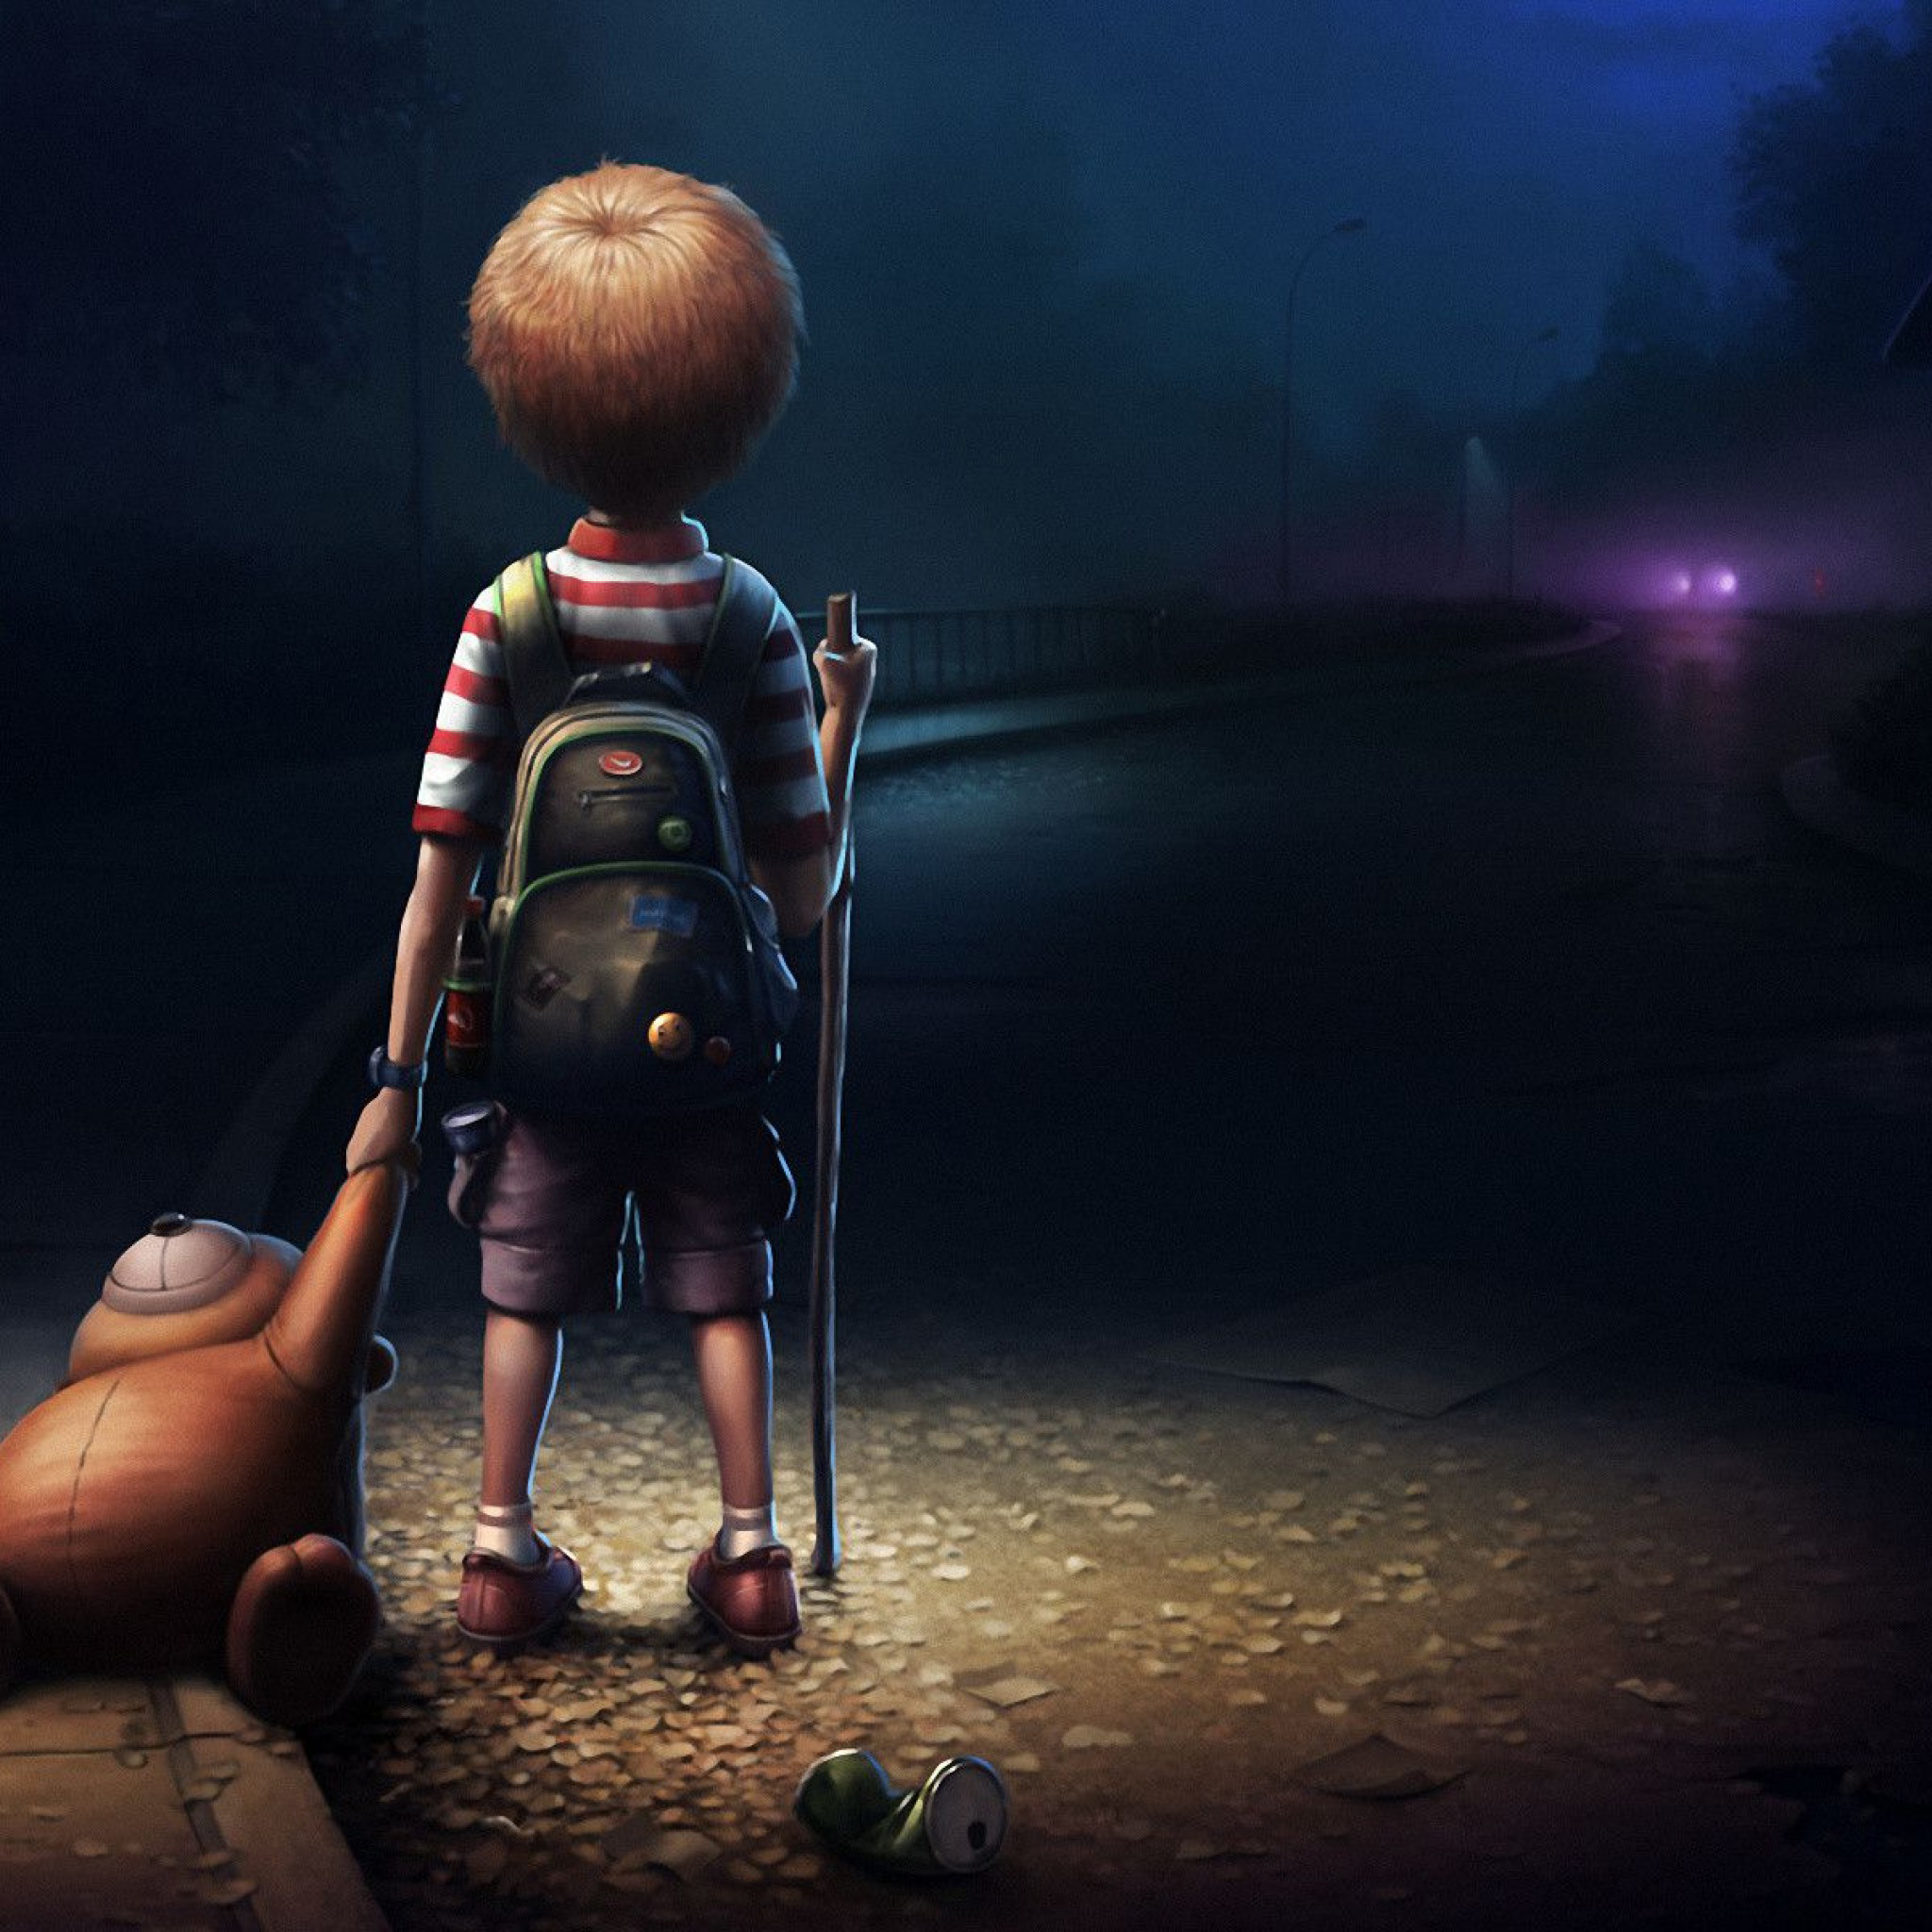 Download Animated Lonely Boy Wallpapers Gallery